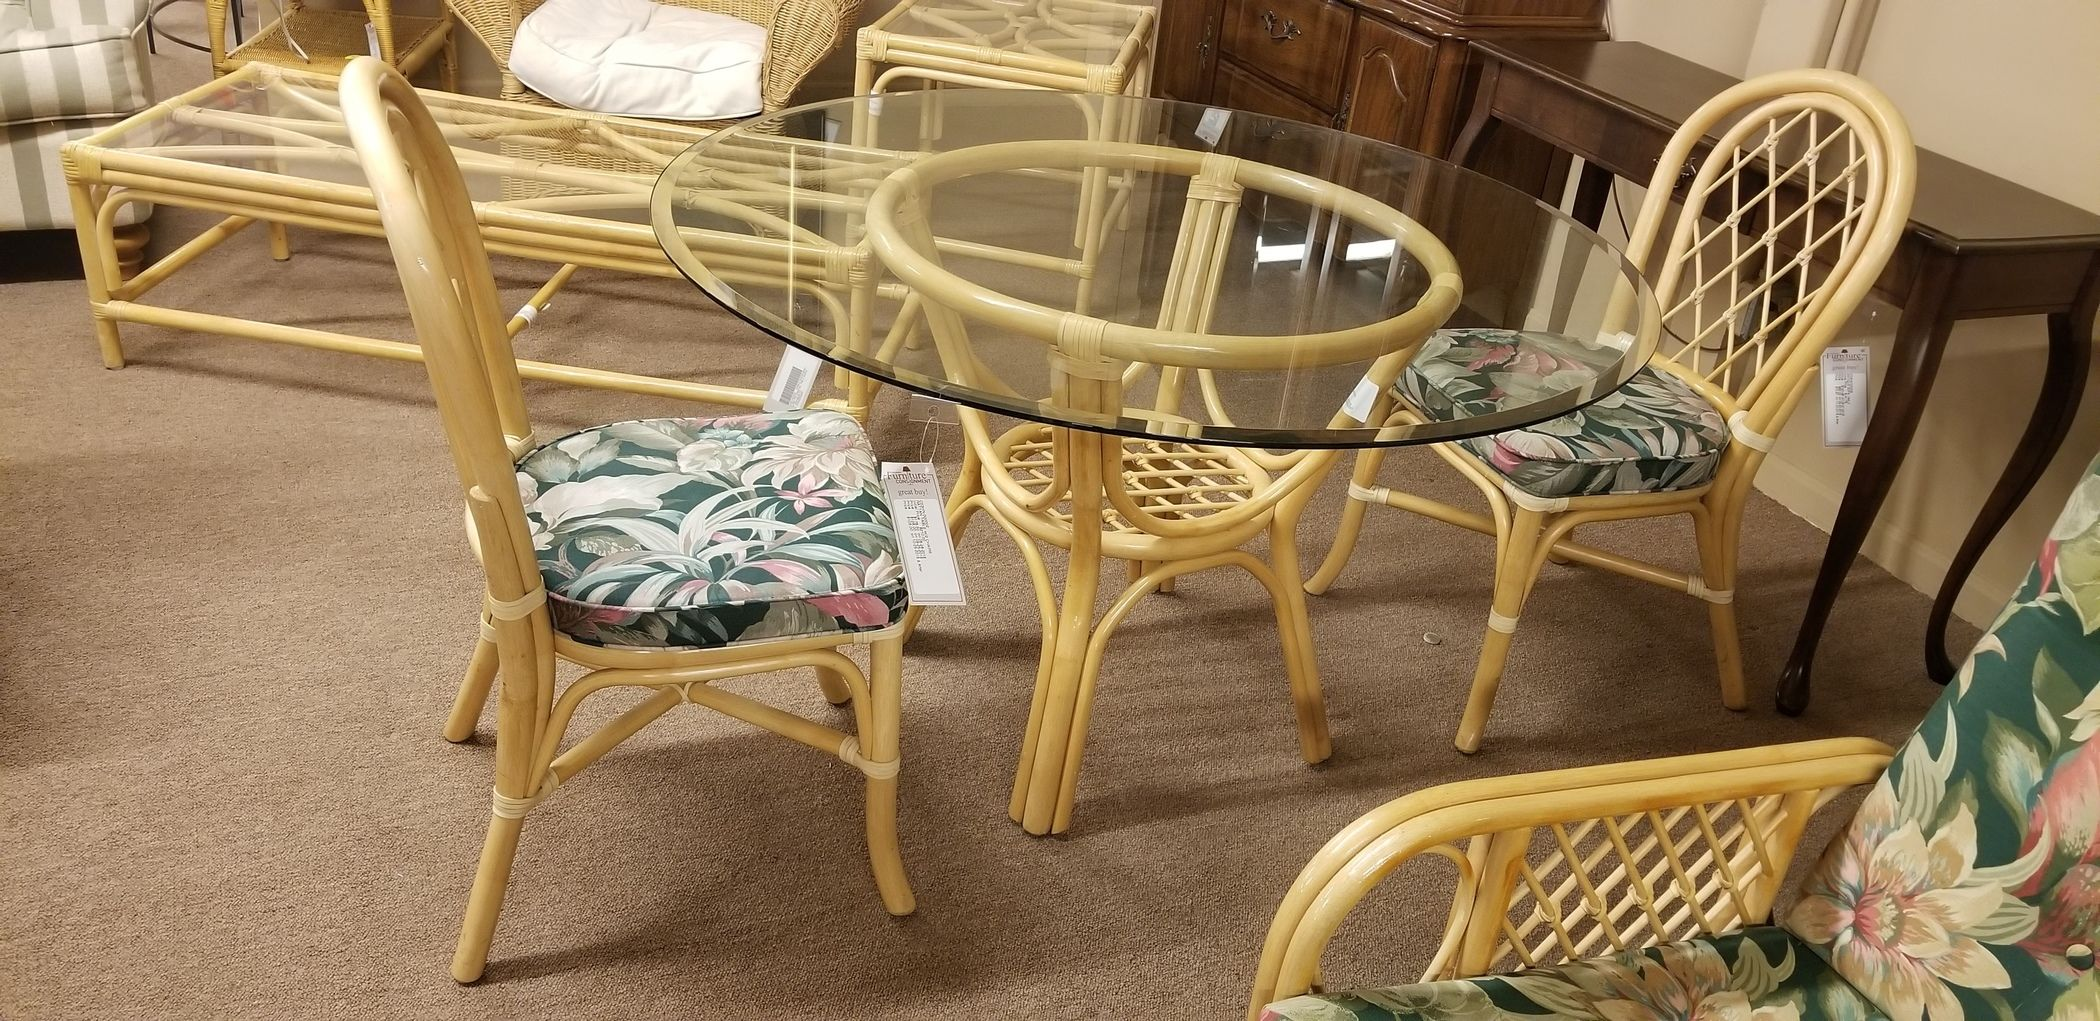 2 chairs and table rattan chair rail picture frame moulding w delmarva furniture consignment medium 15327974679696395935067547643937 15327974995956253966765791688299 15327975210731116990172061215707